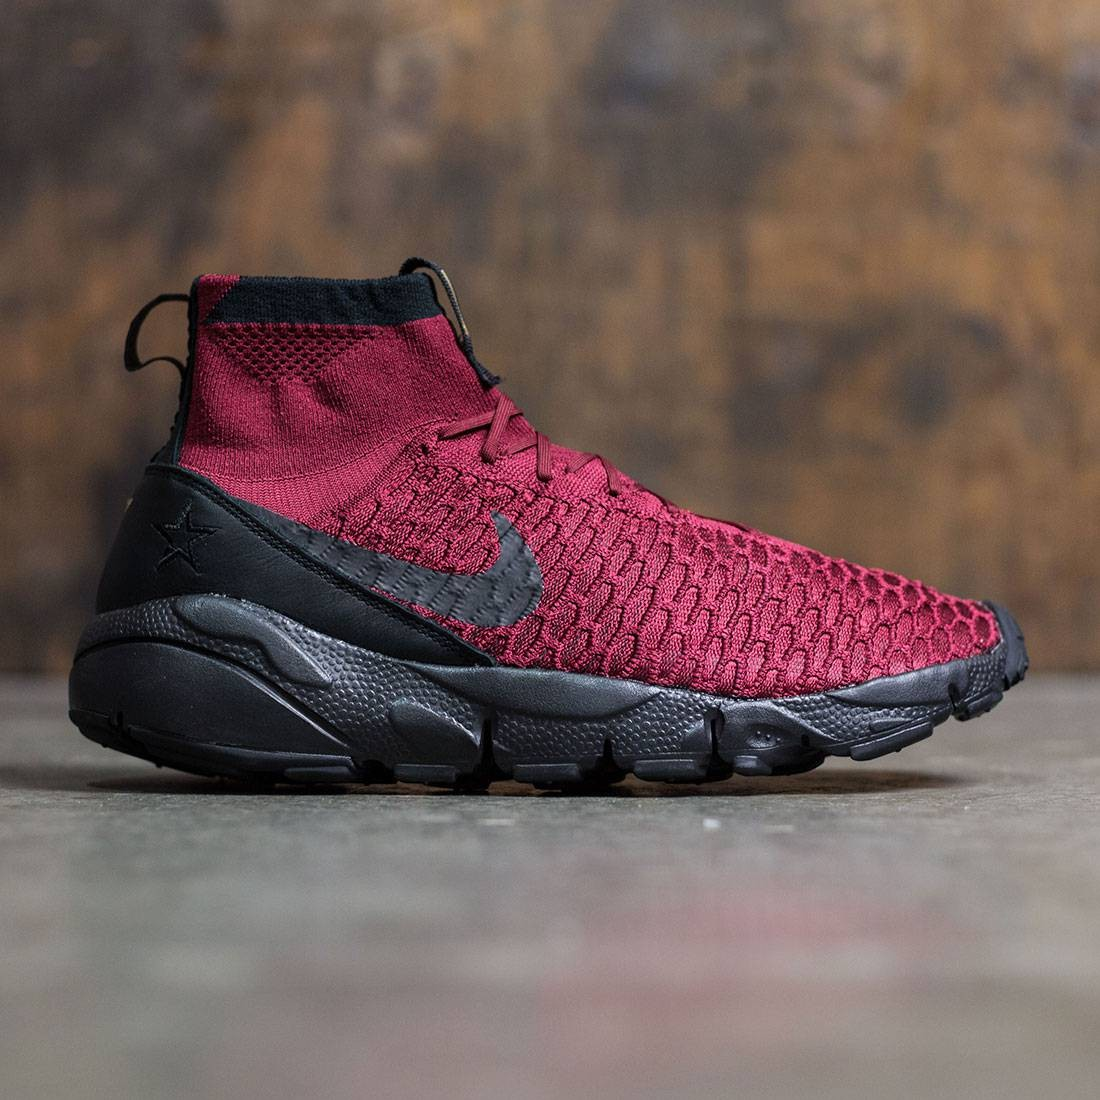 Nike Men's Air Footscape Magista... buy cheap free shipping TUVgoWA